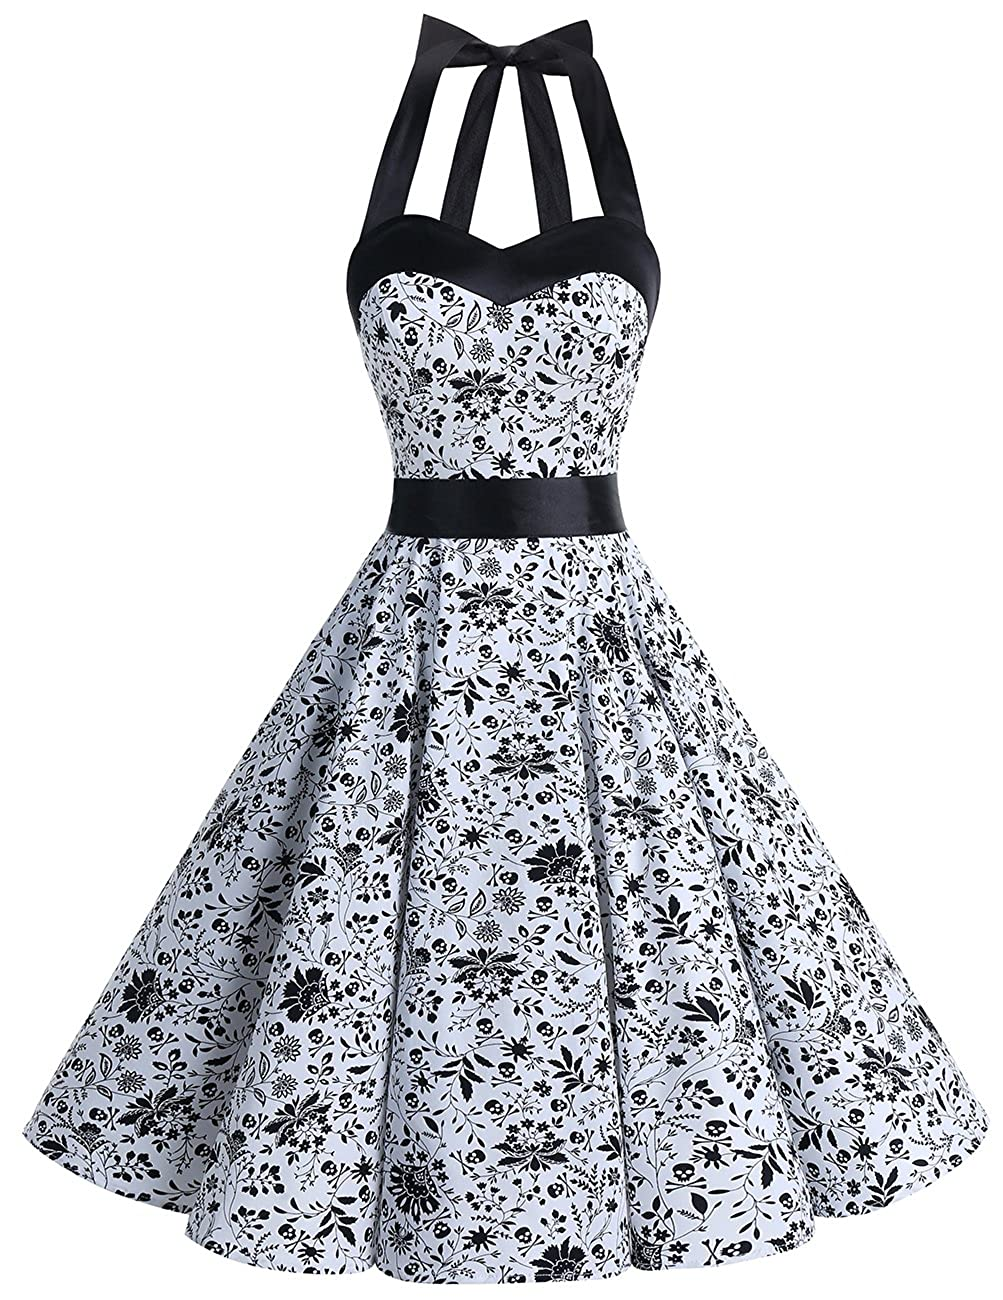 TALLA XL. Dresstells® Halter 50s Rockabilly Polka Dots Audrey Dress Retro Cocktail Dress White Skull XL